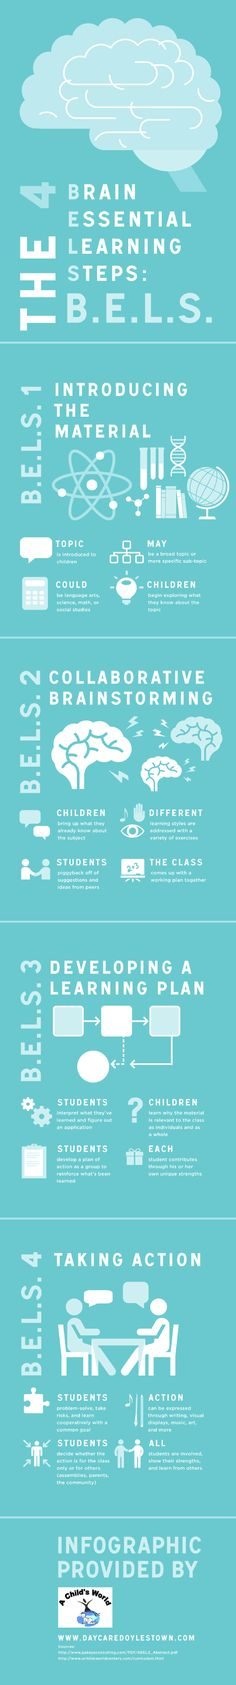 The 4 Brain Essential Learning Steps - Edudemic